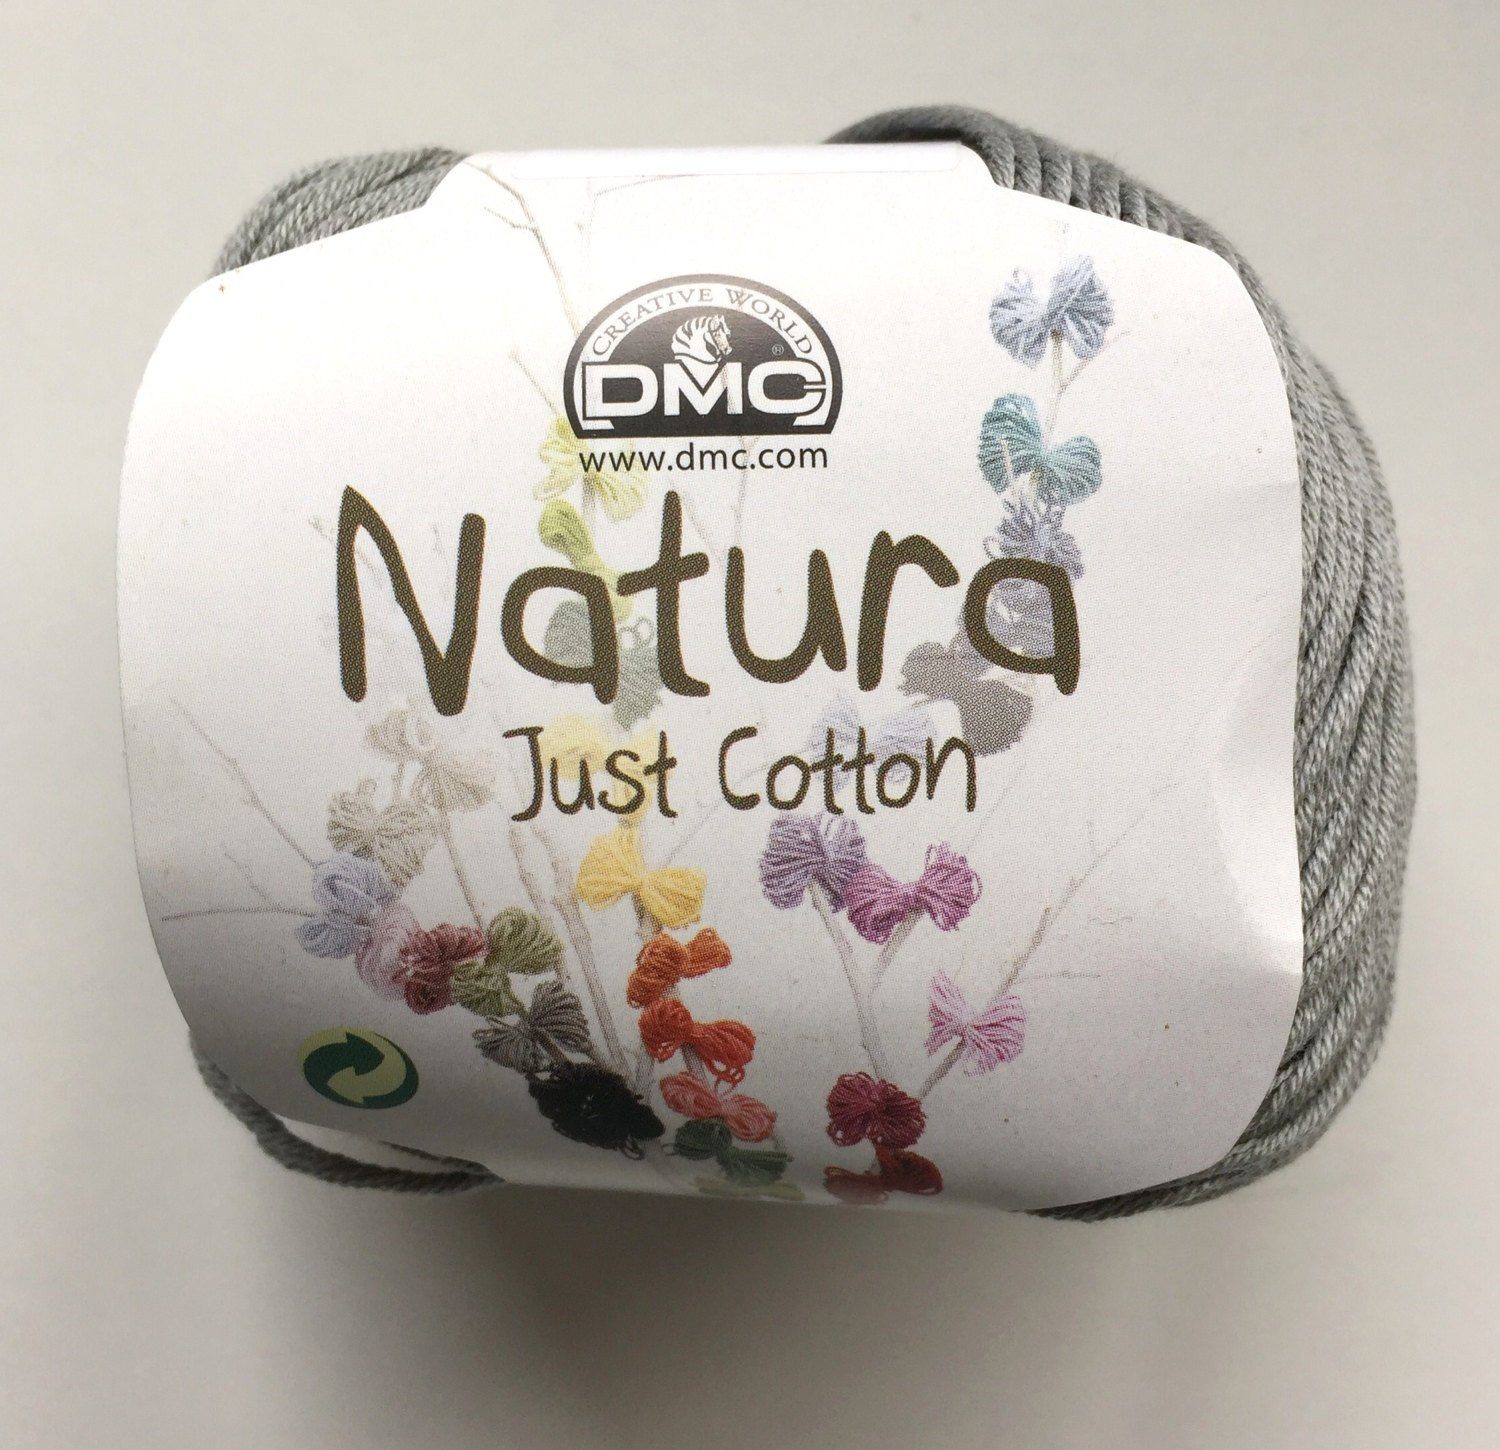 Dmc Natura Just Cotton Elegant Dmc Natura Just Cotton Cotton 4 Ply Yarn Gris Of Amazing 45 Ideas Dmc Natura Just Cotton